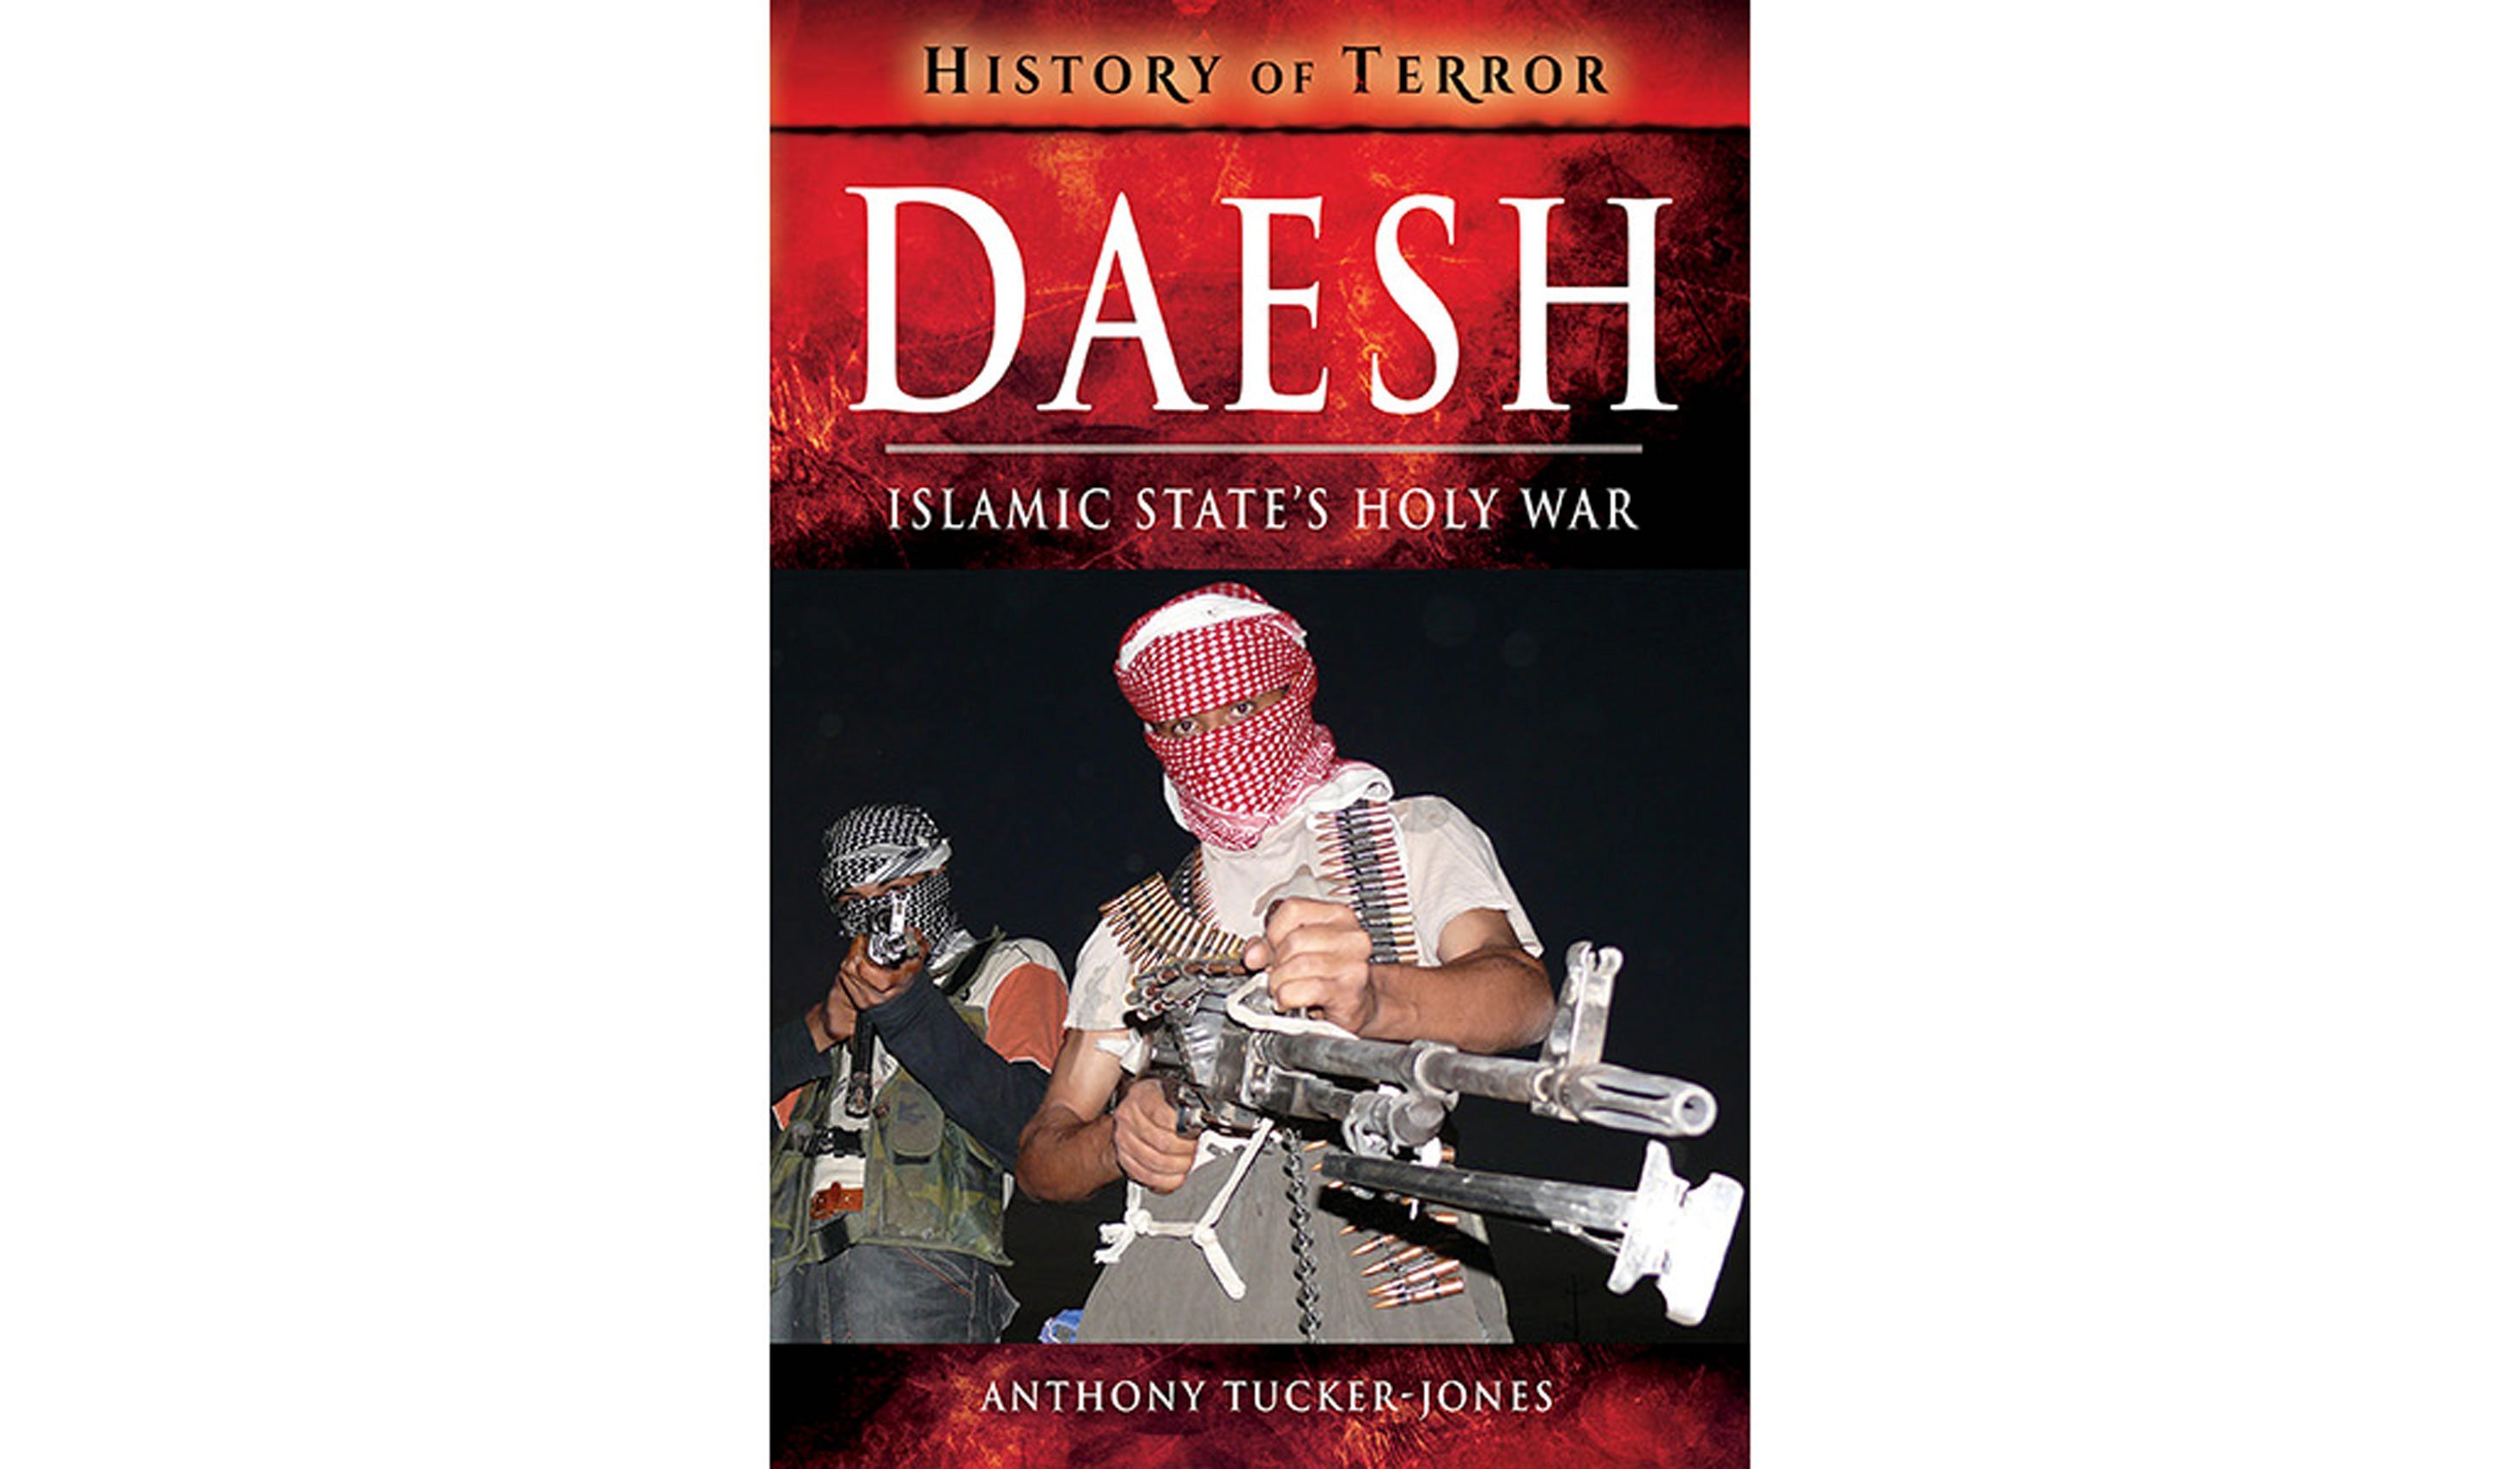 BOOK REVIEW: 'Daesh: Islamic State's Holy War' by Anthony Tucker-Jones